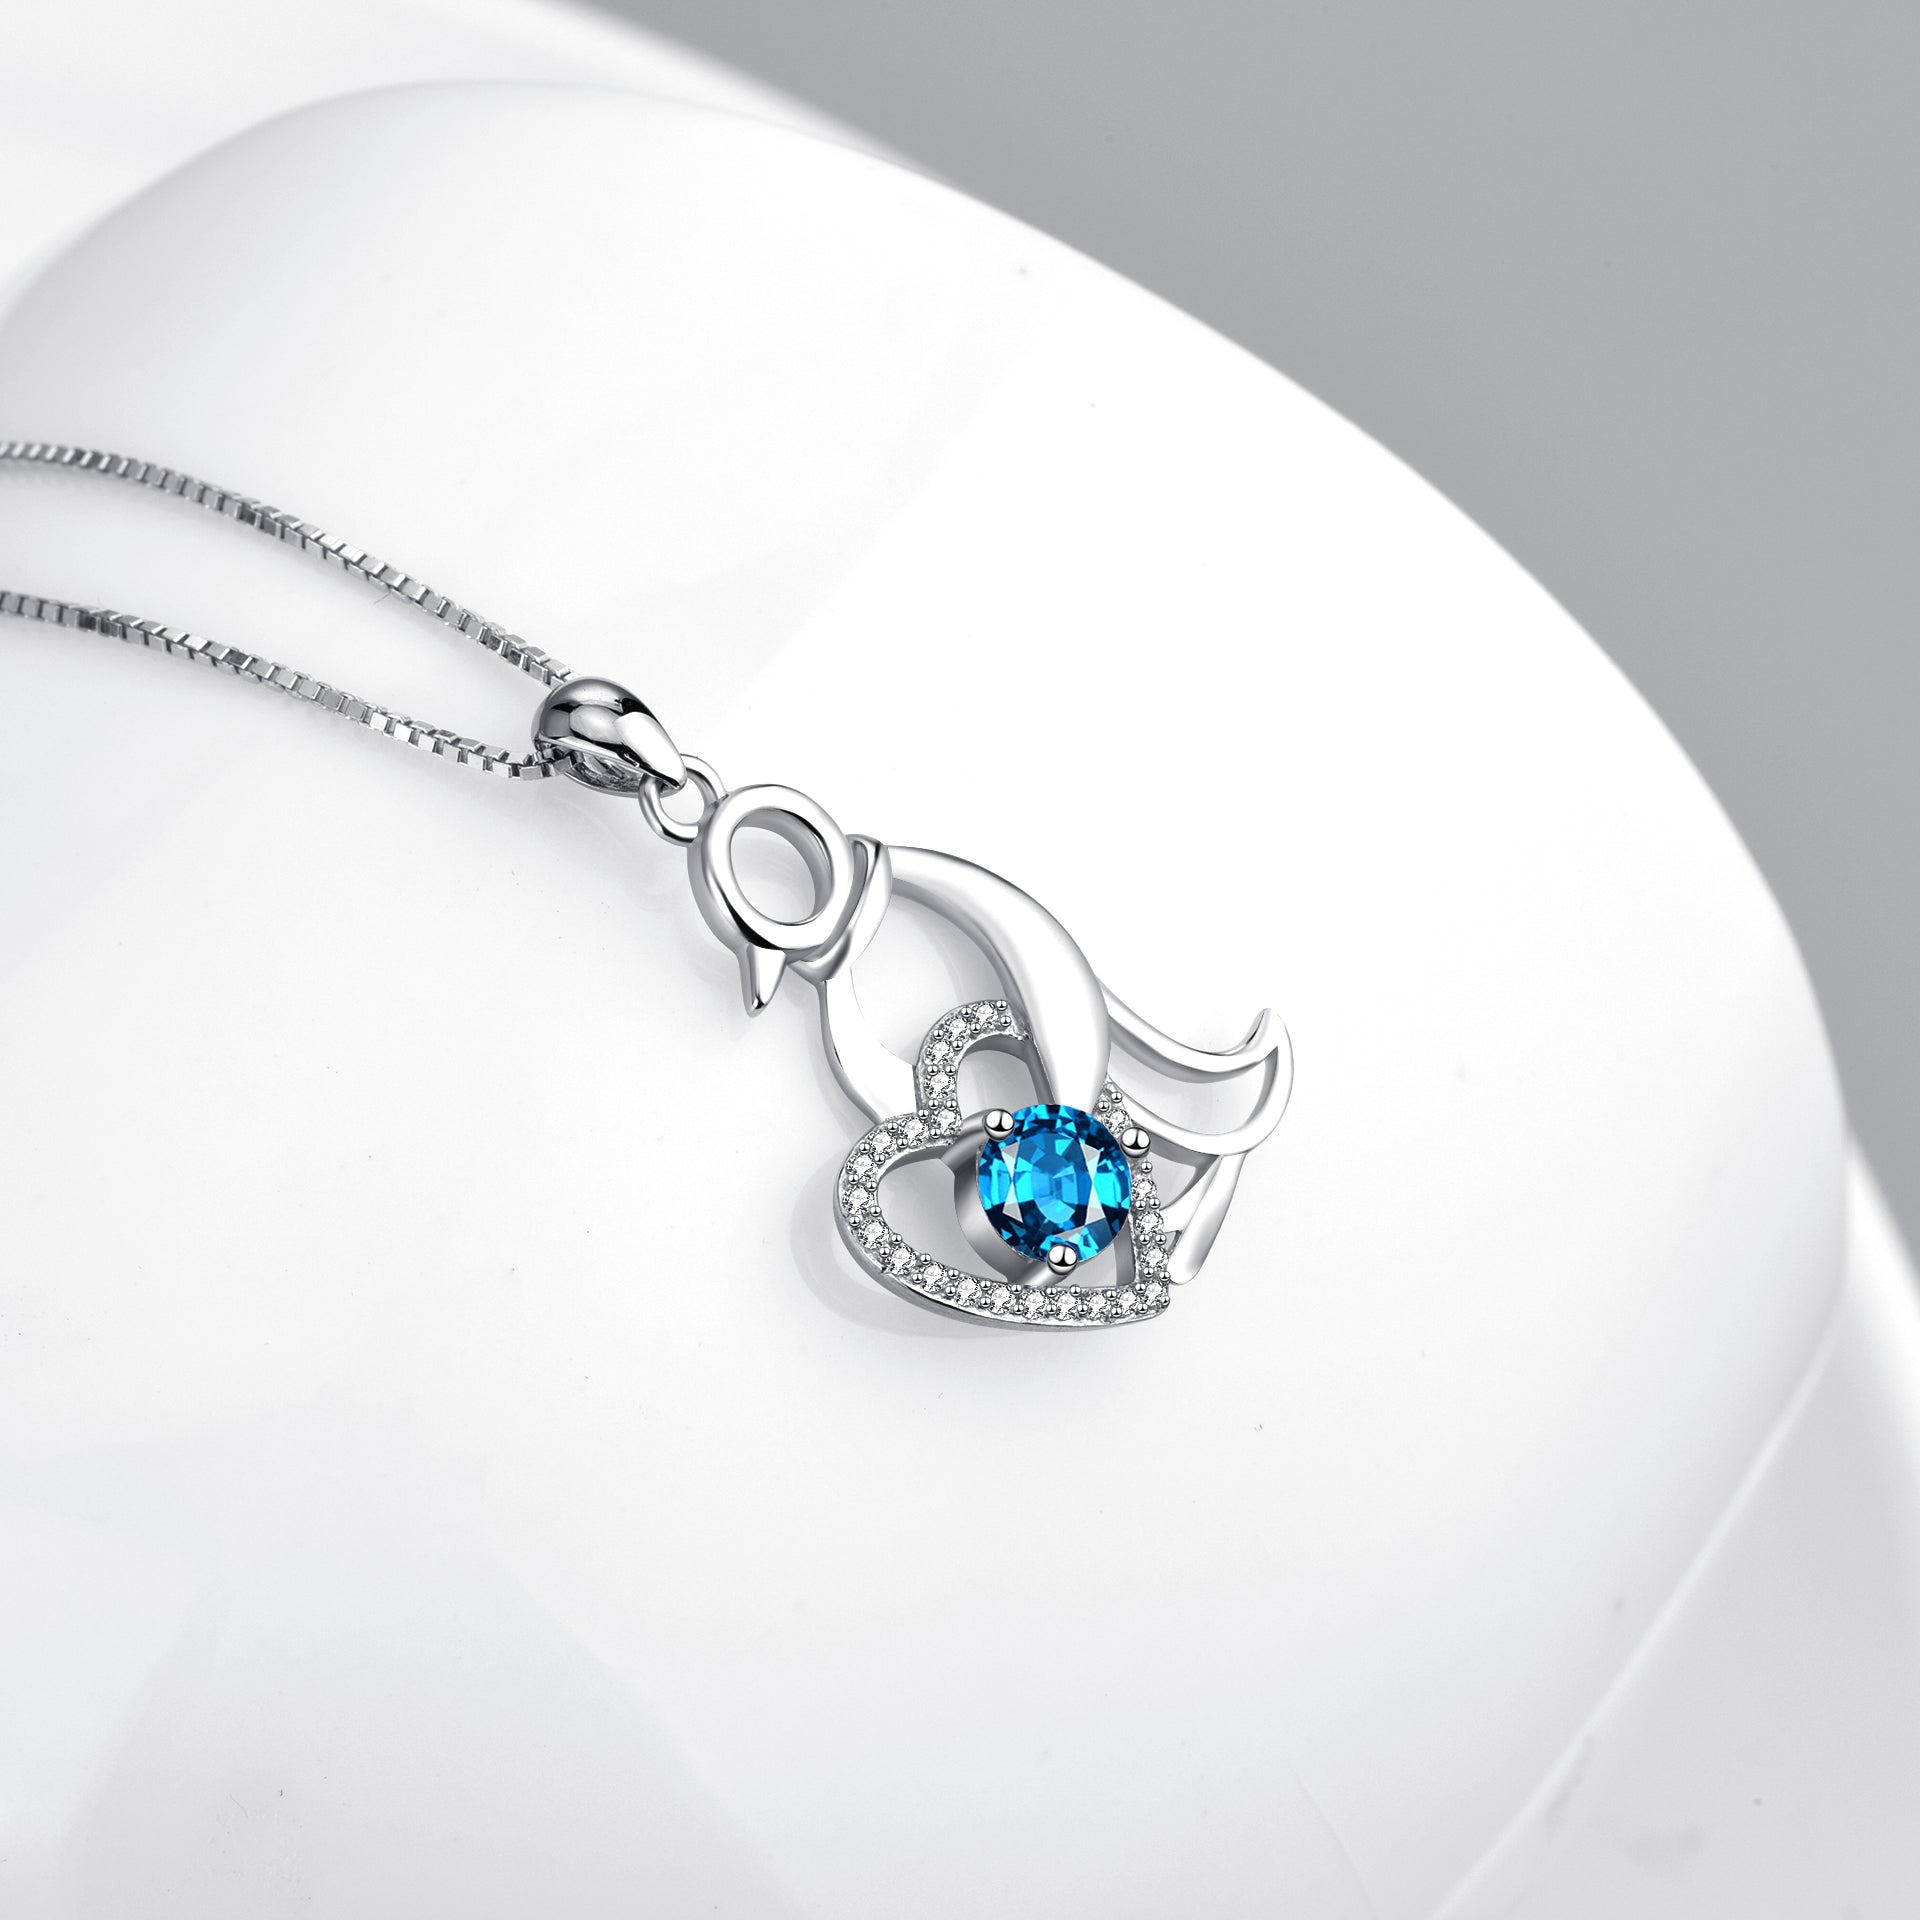 S925 Engraved Family Necklace Love Heart Penguin Crystal Pendant Necklace